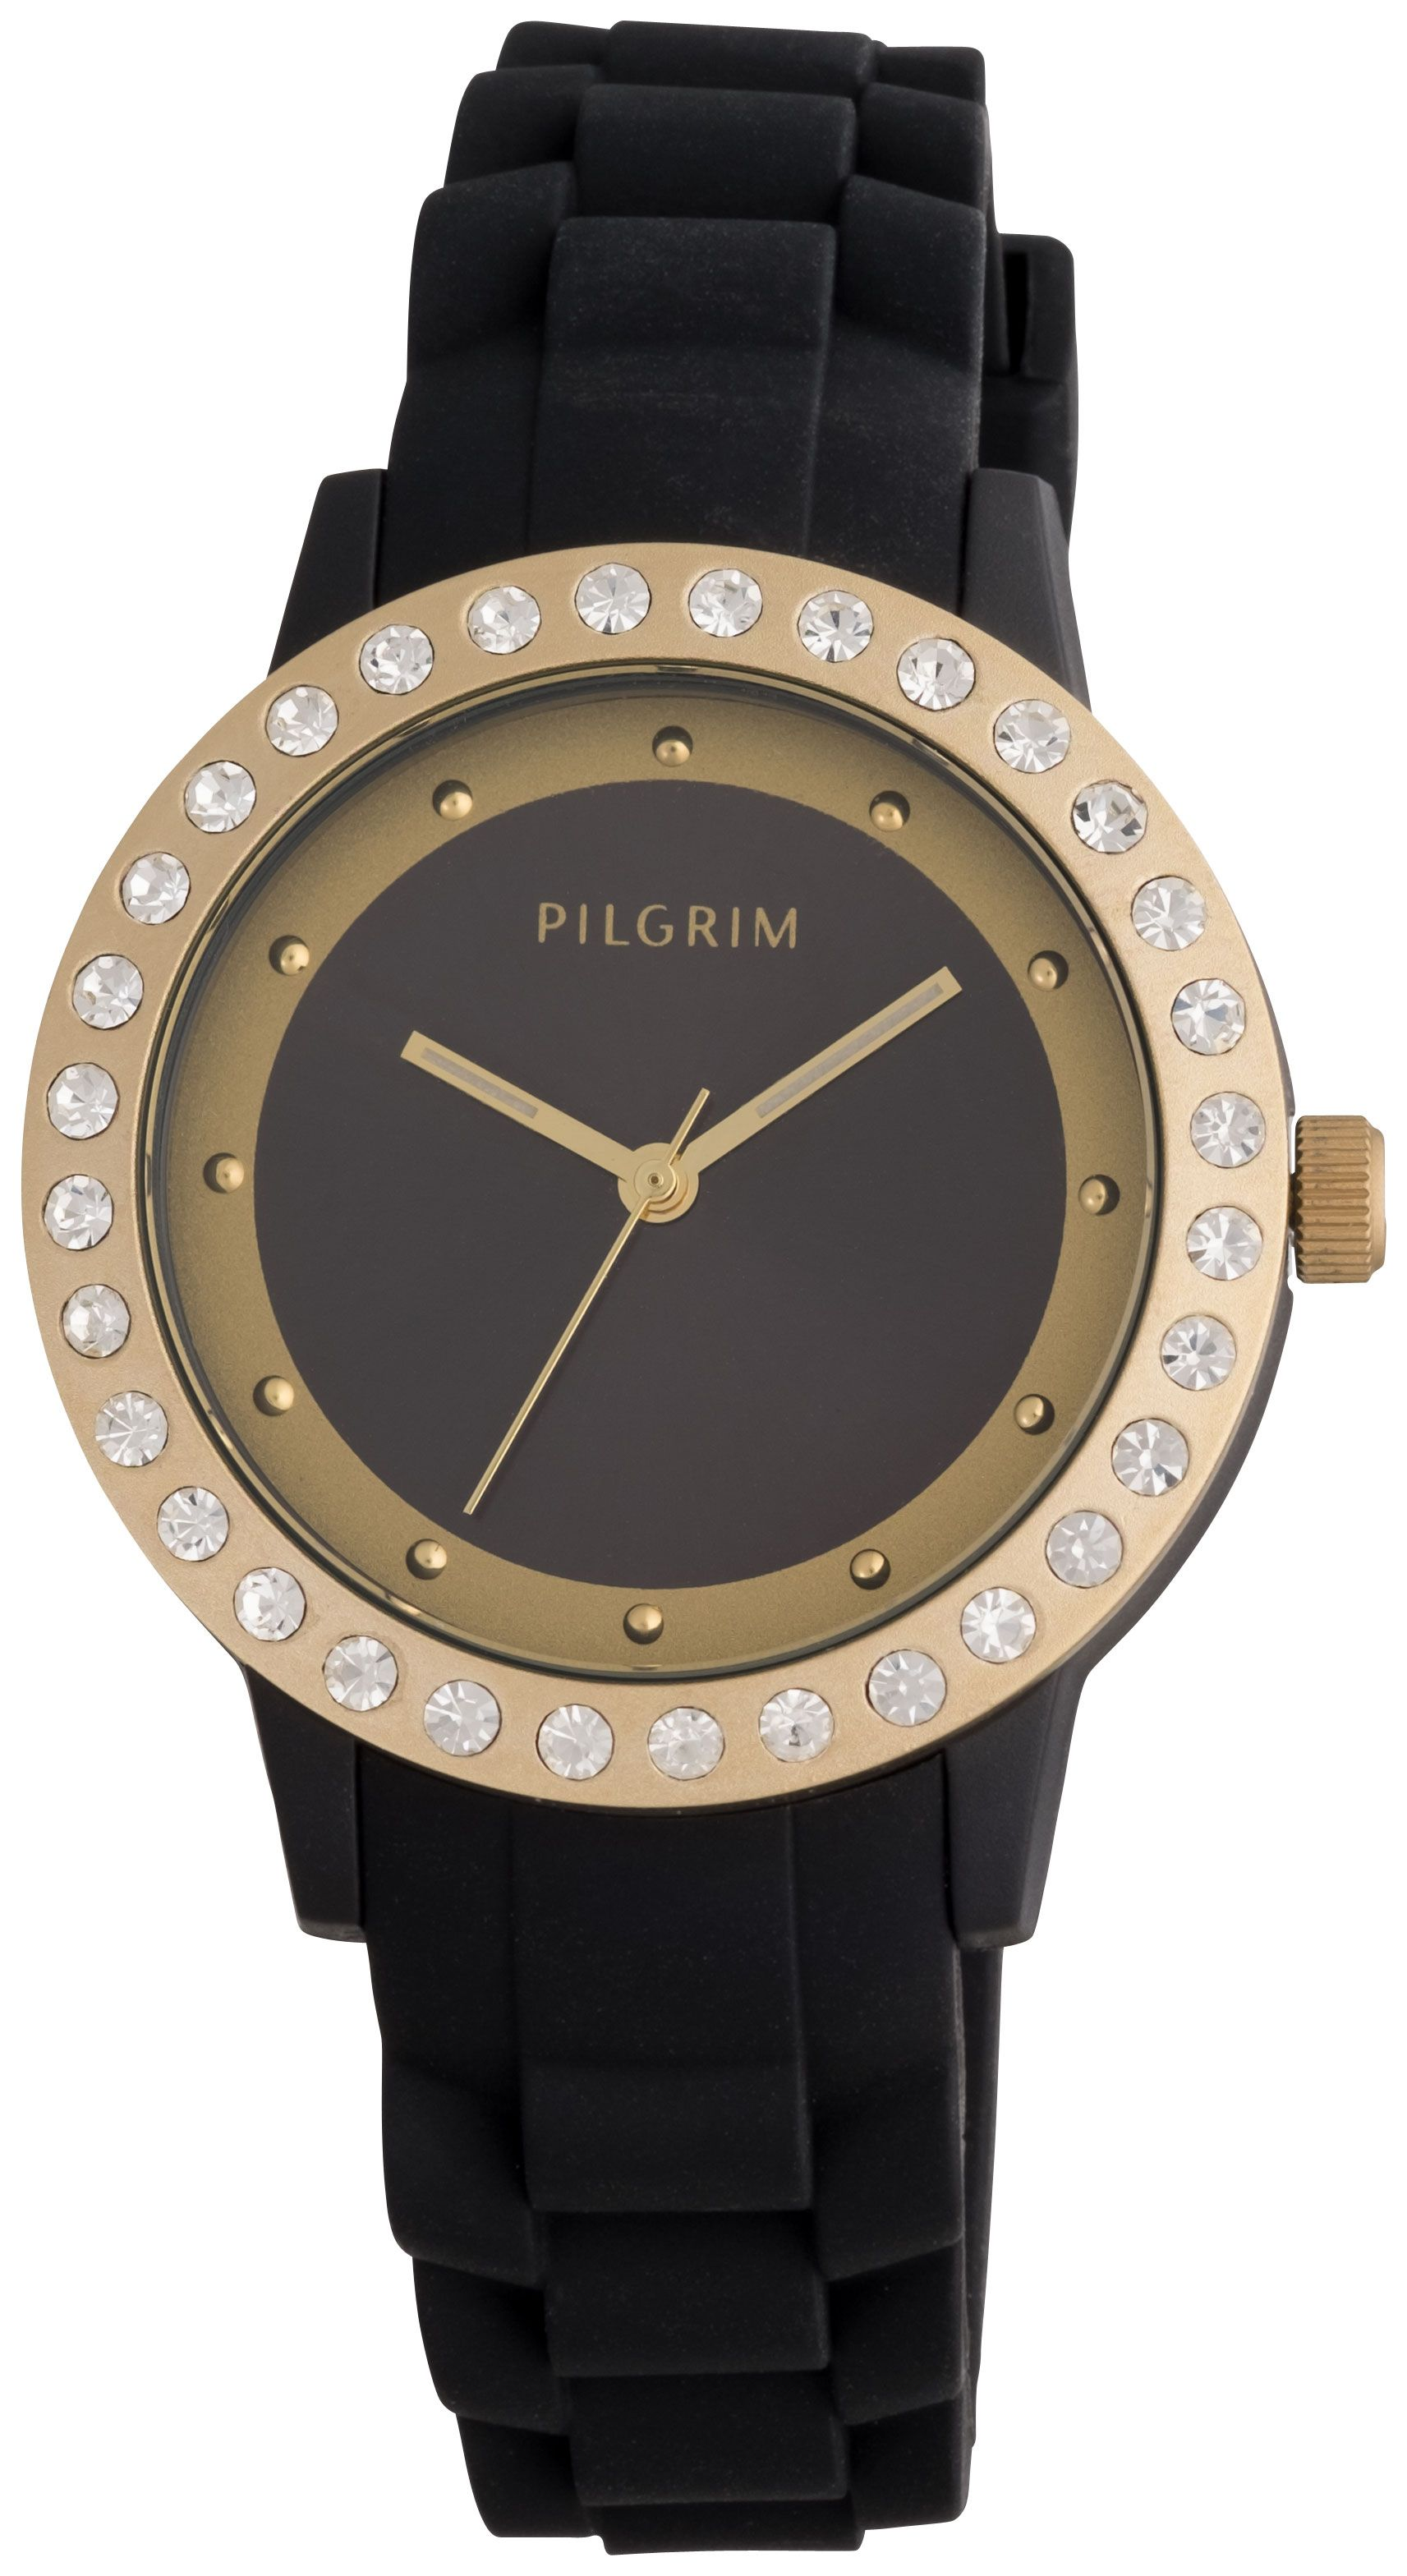 Pilgrim Gold plated with black watch Black